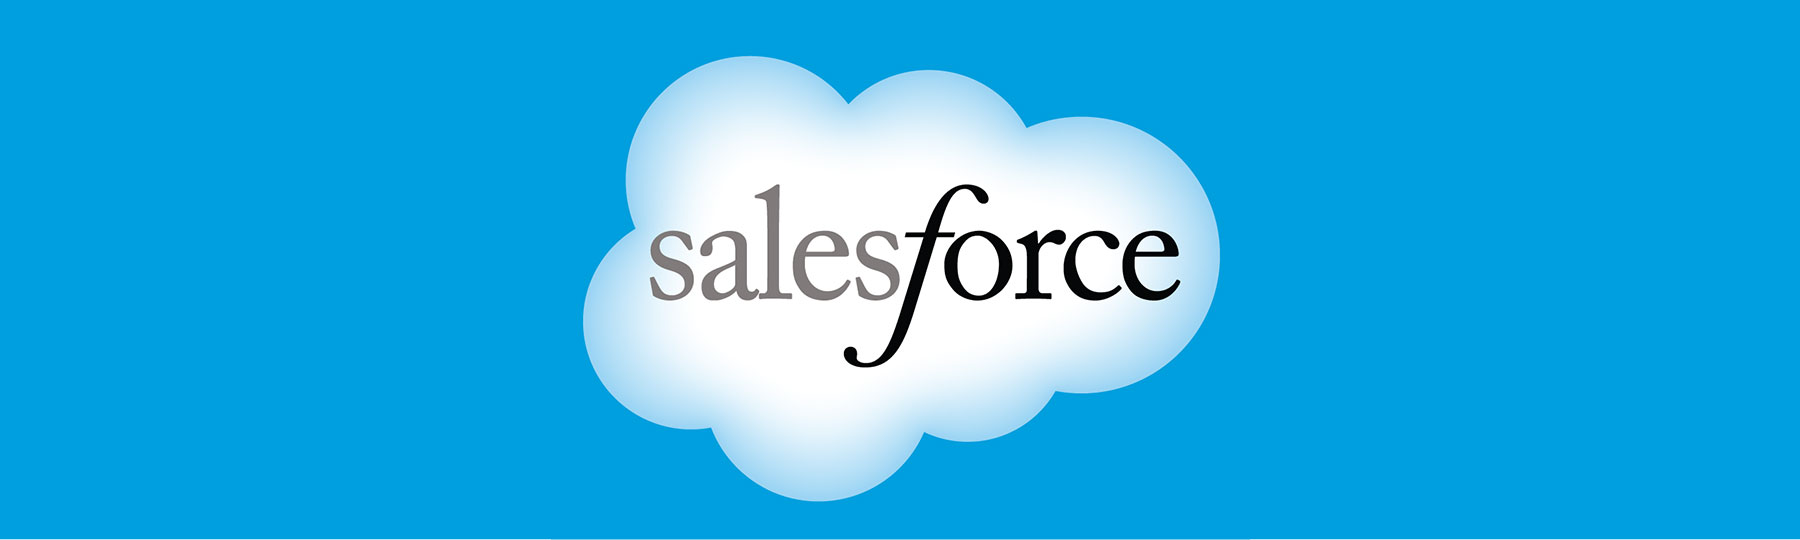 salesforce_view